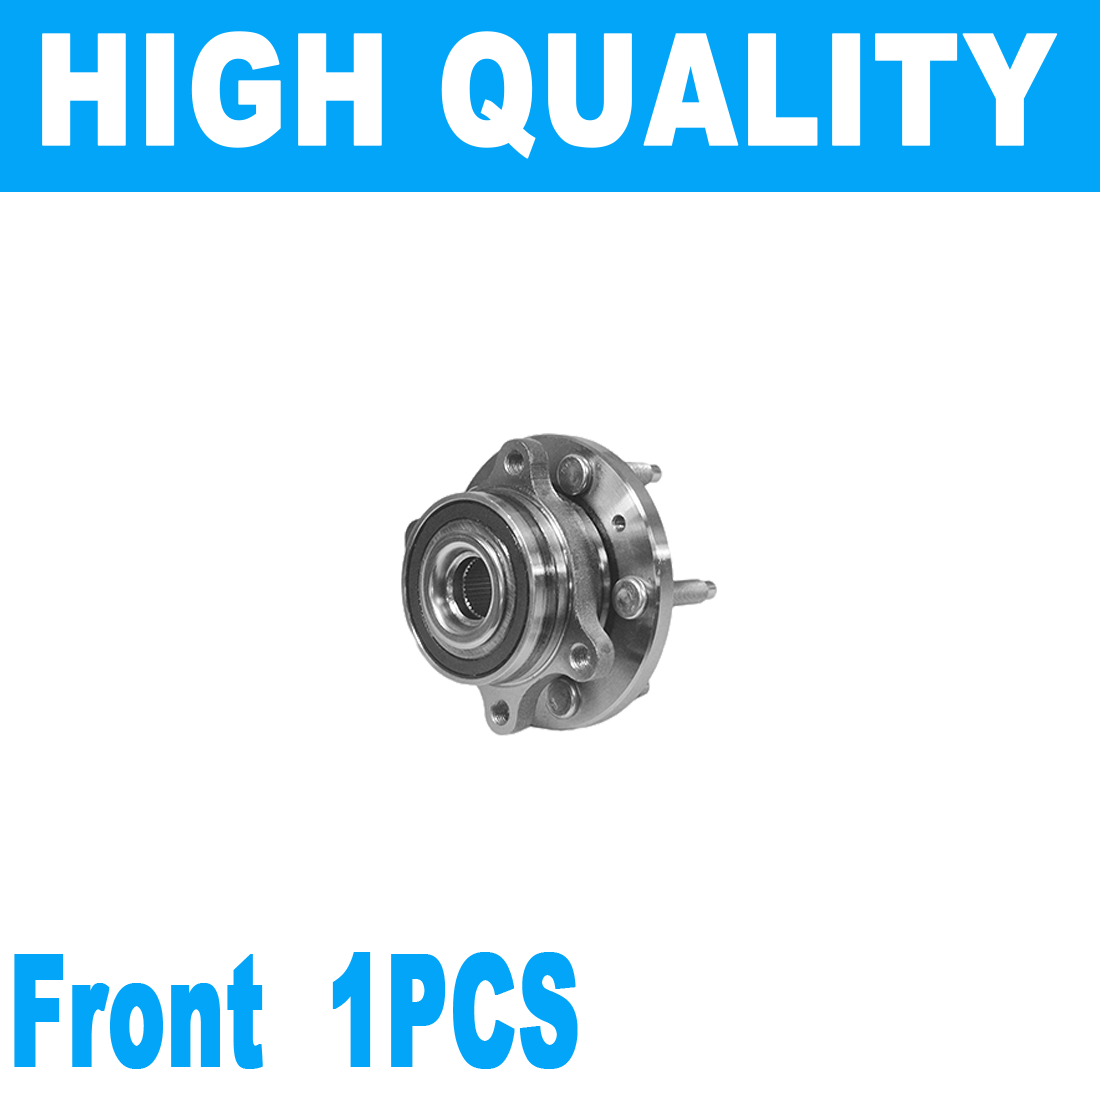 One Bearing Included with Two Years Warranty Note: FWD 4-Wheel ABS 2004 fits Ford Freestar Rear Right Wheel Bearing and Hub Assembly